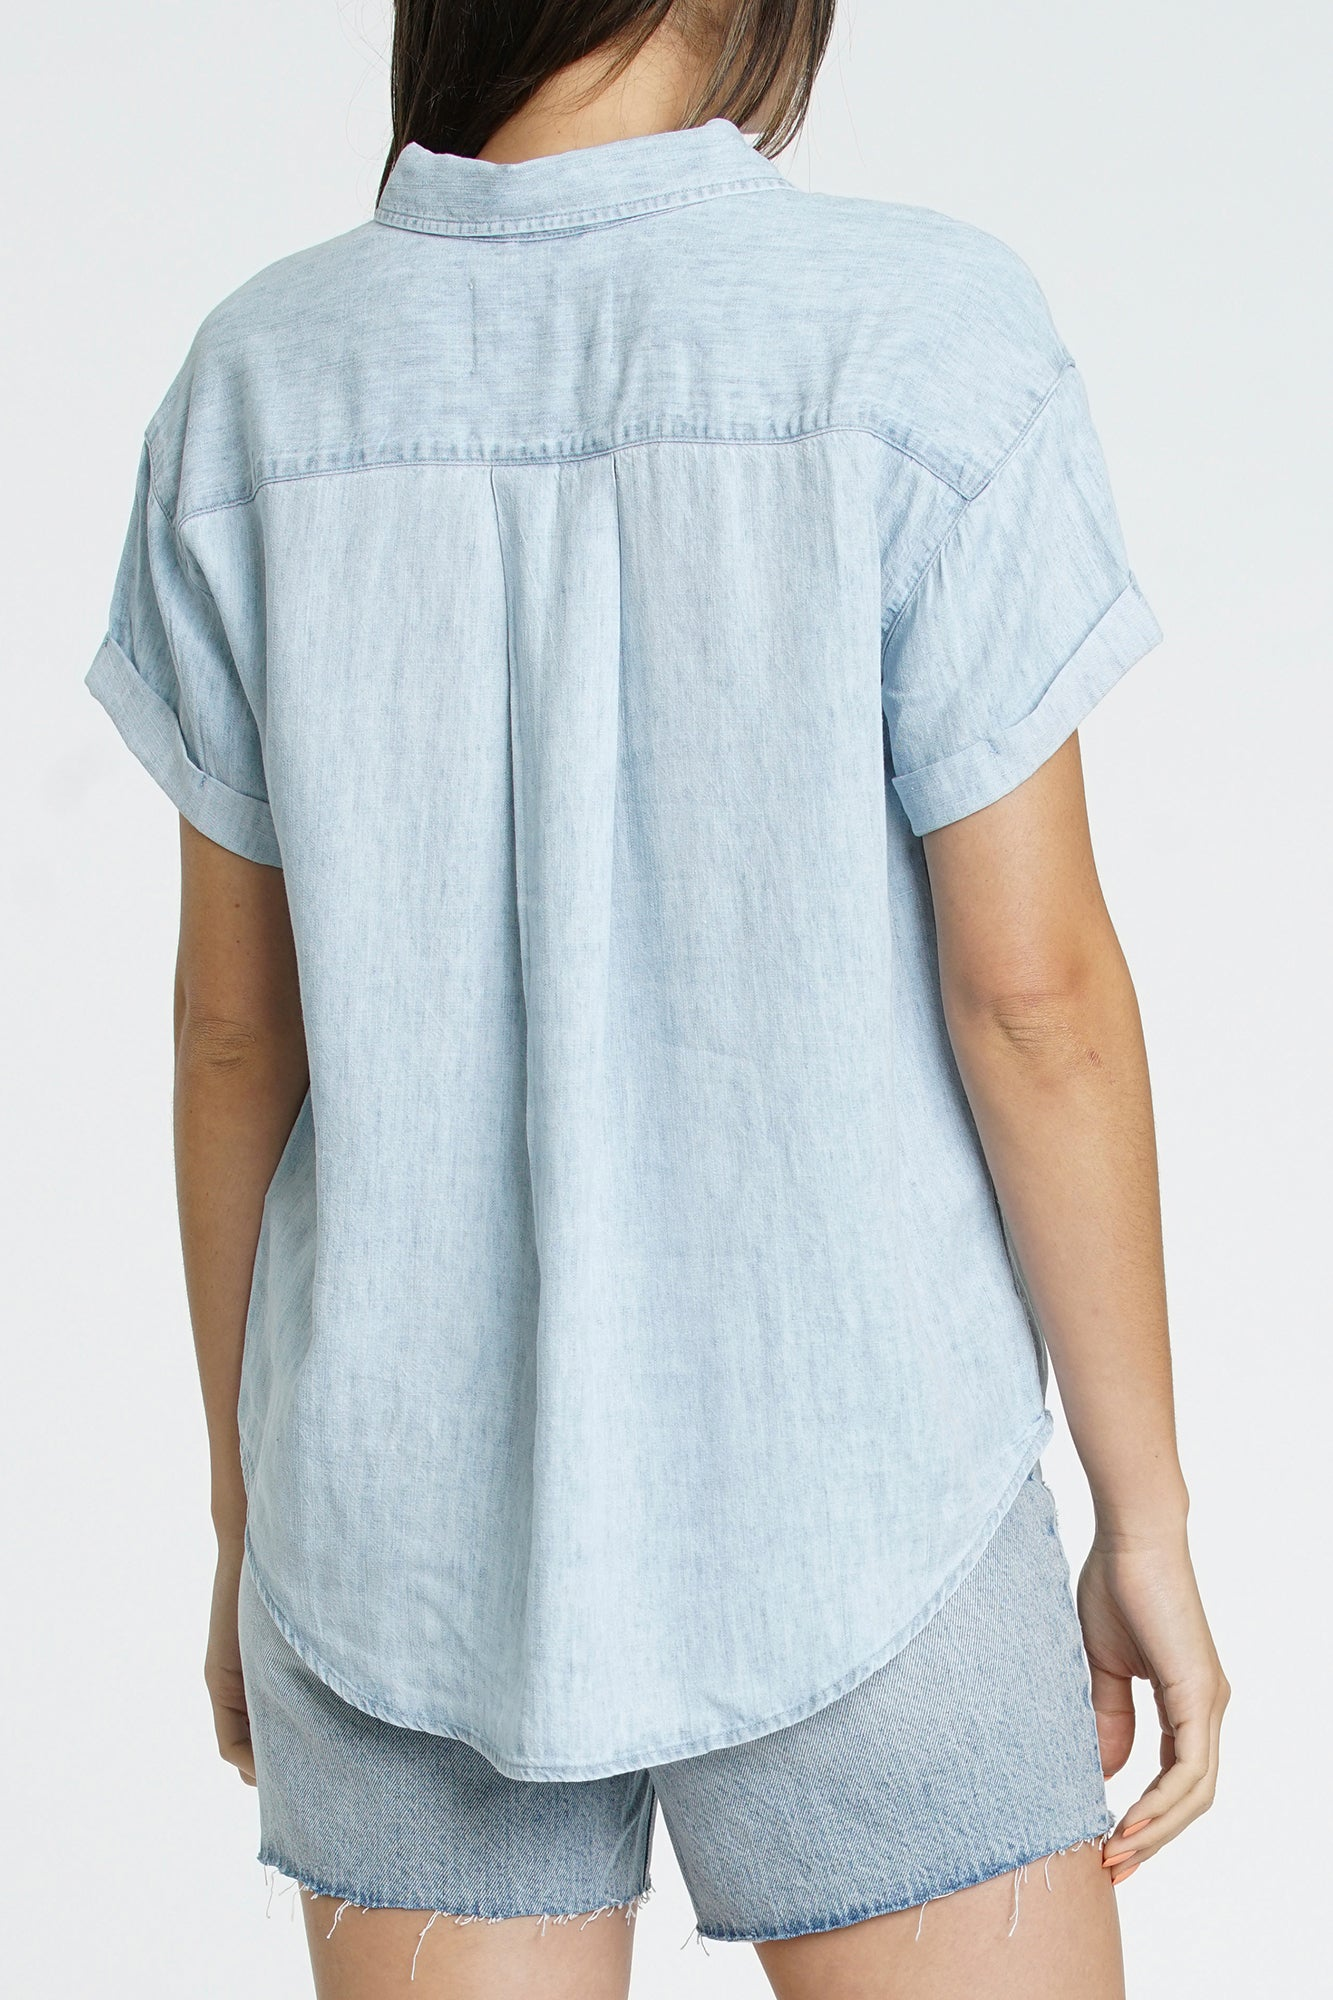 Courtney Cuffed Short Sleeve Shirt - Blue Jay